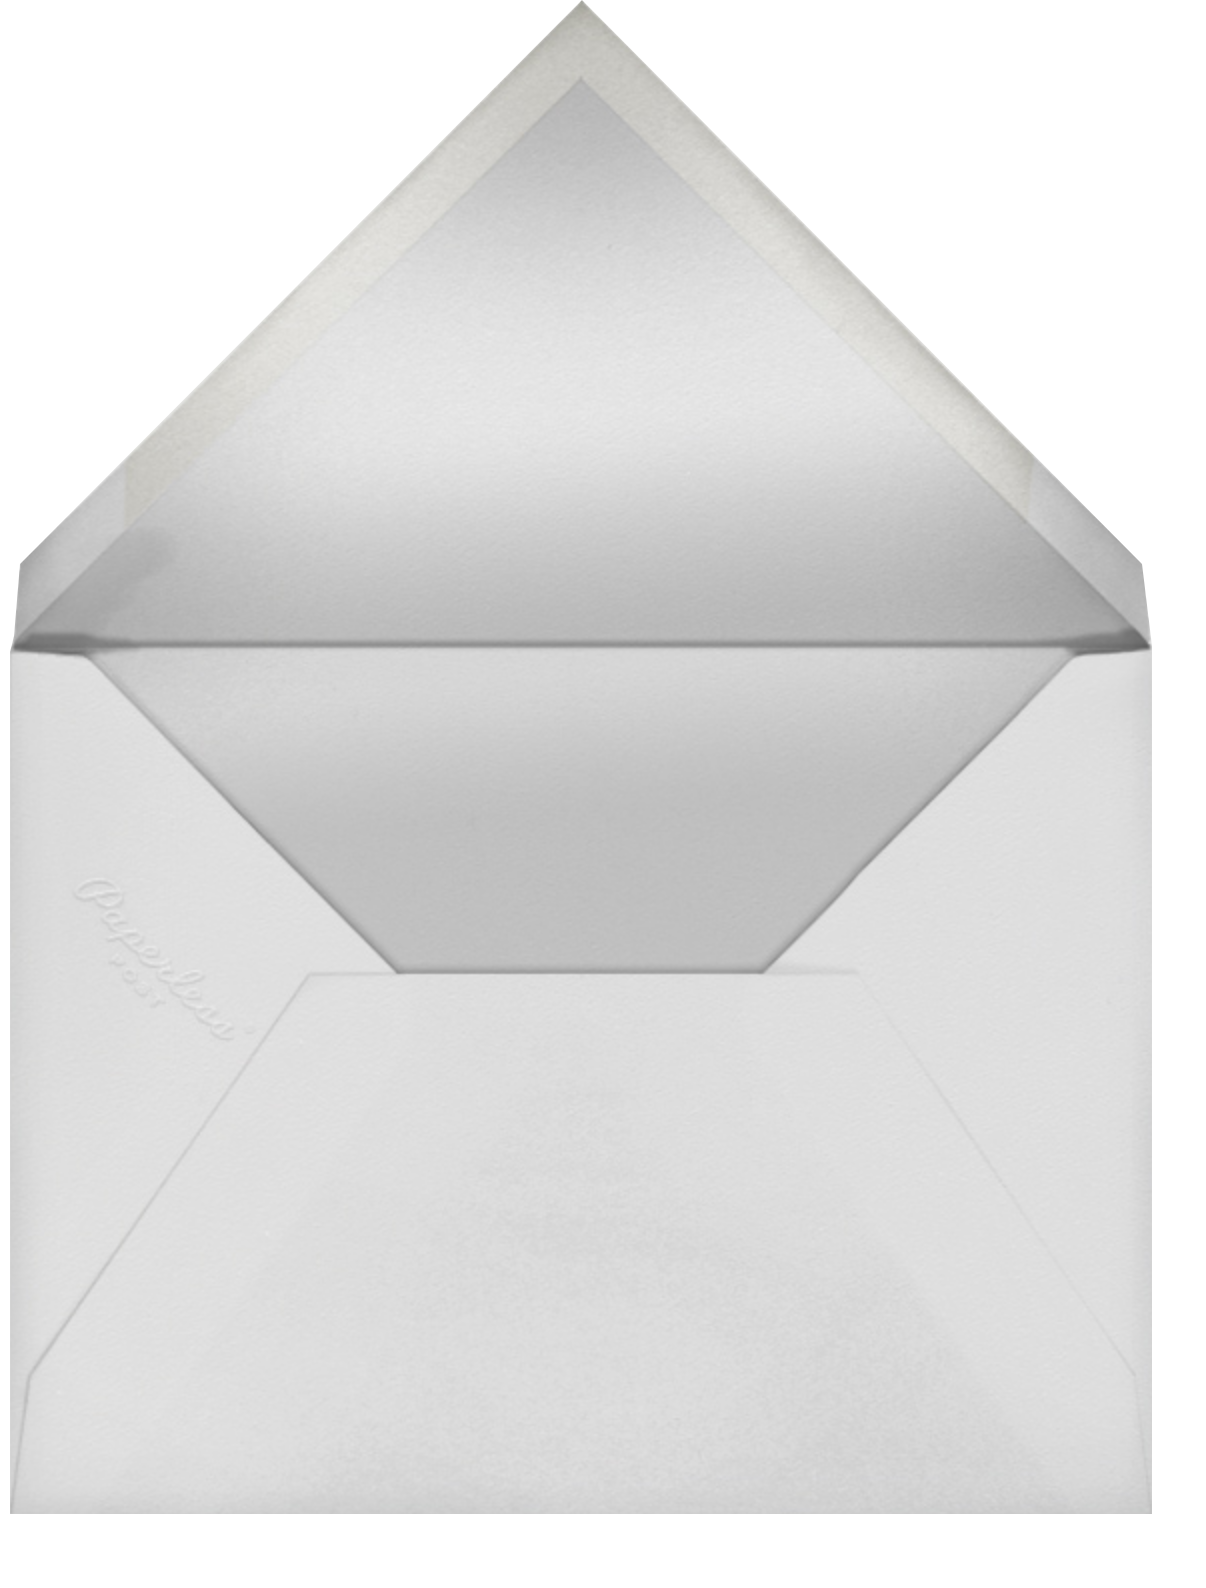 Hold onto your Lashes - Paperless Post - Envelope